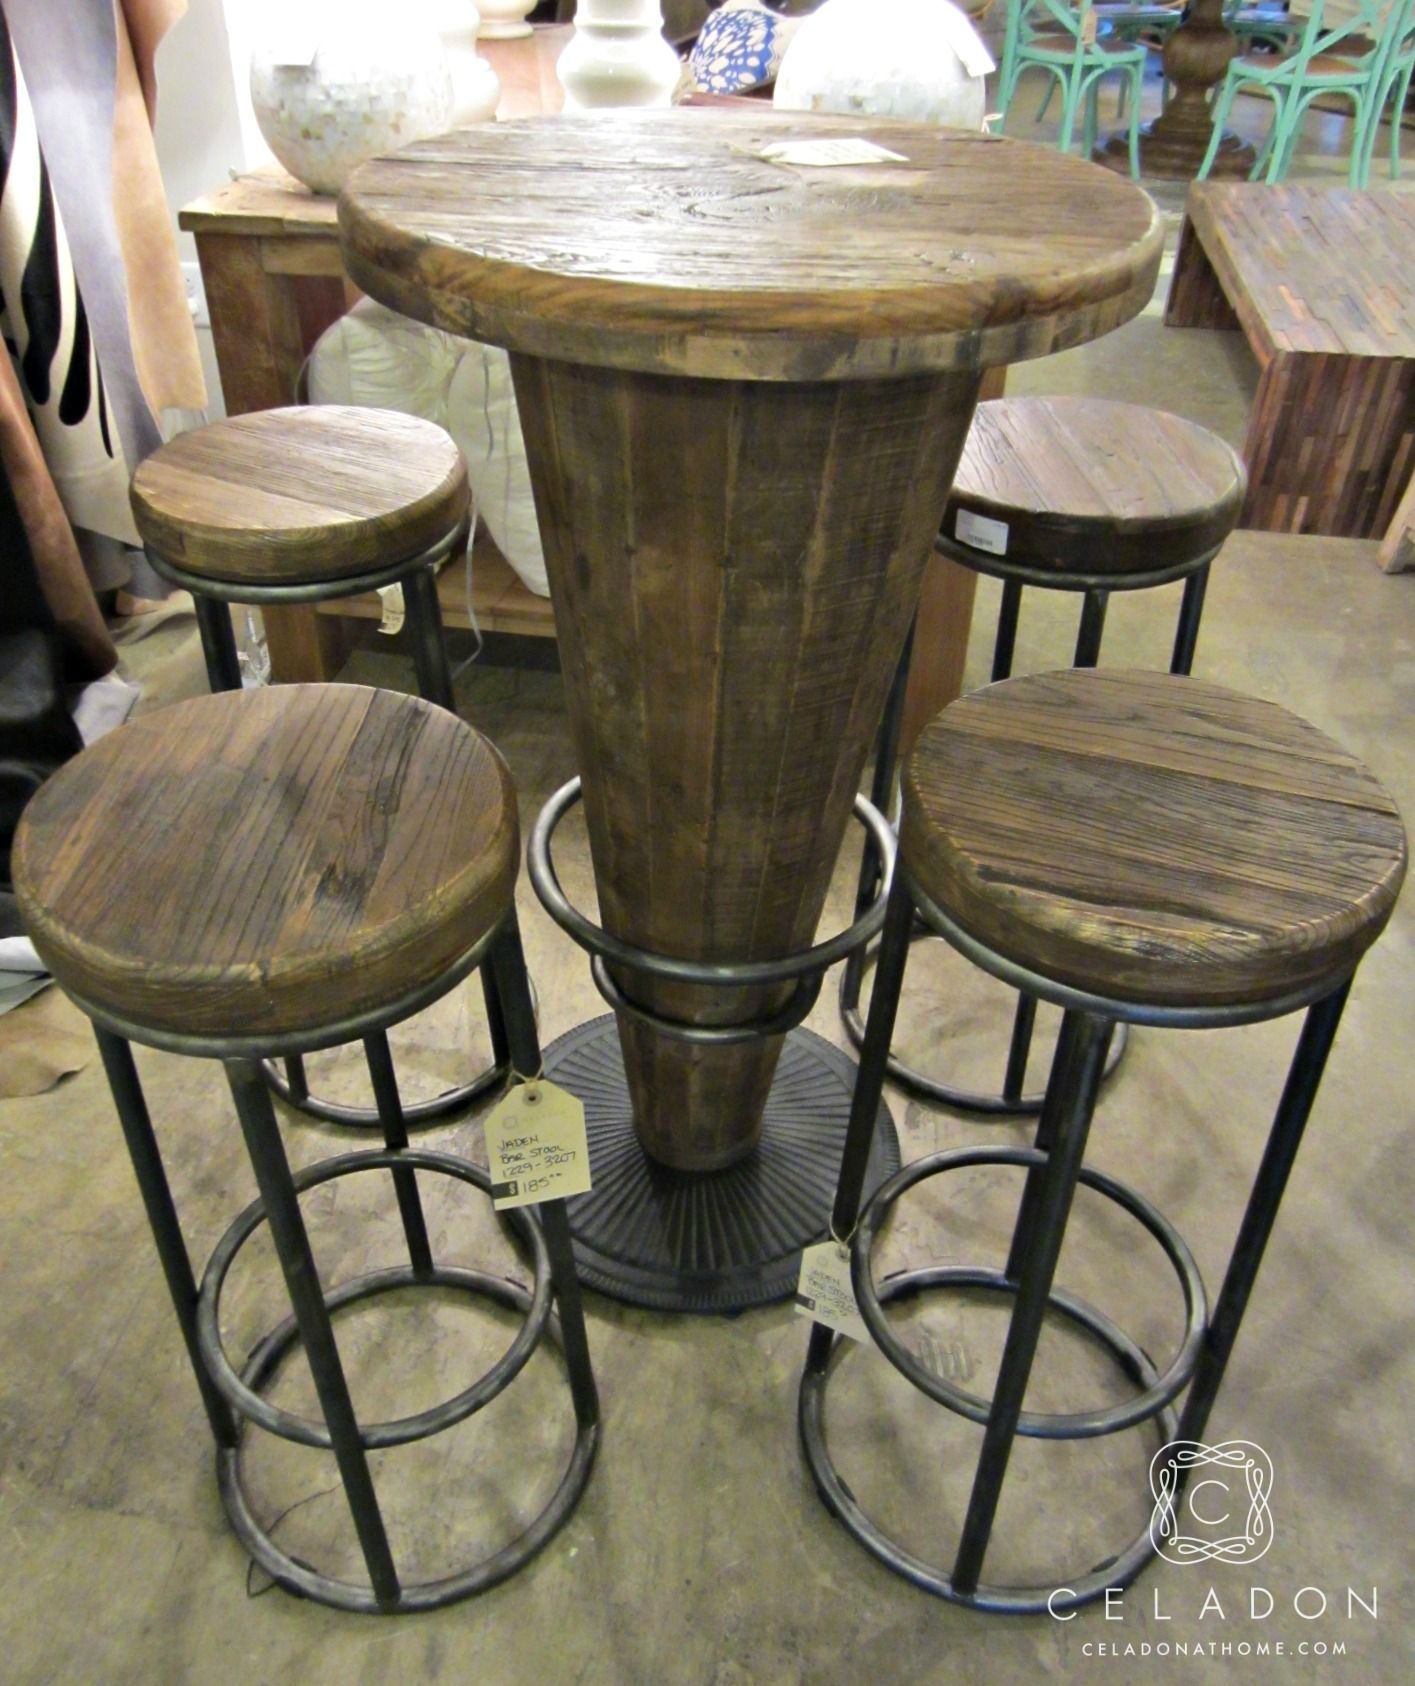 52 Basement Bar Build Building A Basement Bar Barplancom: Morella Wood Pub Table $599 1225-51003416 I Celadonathome